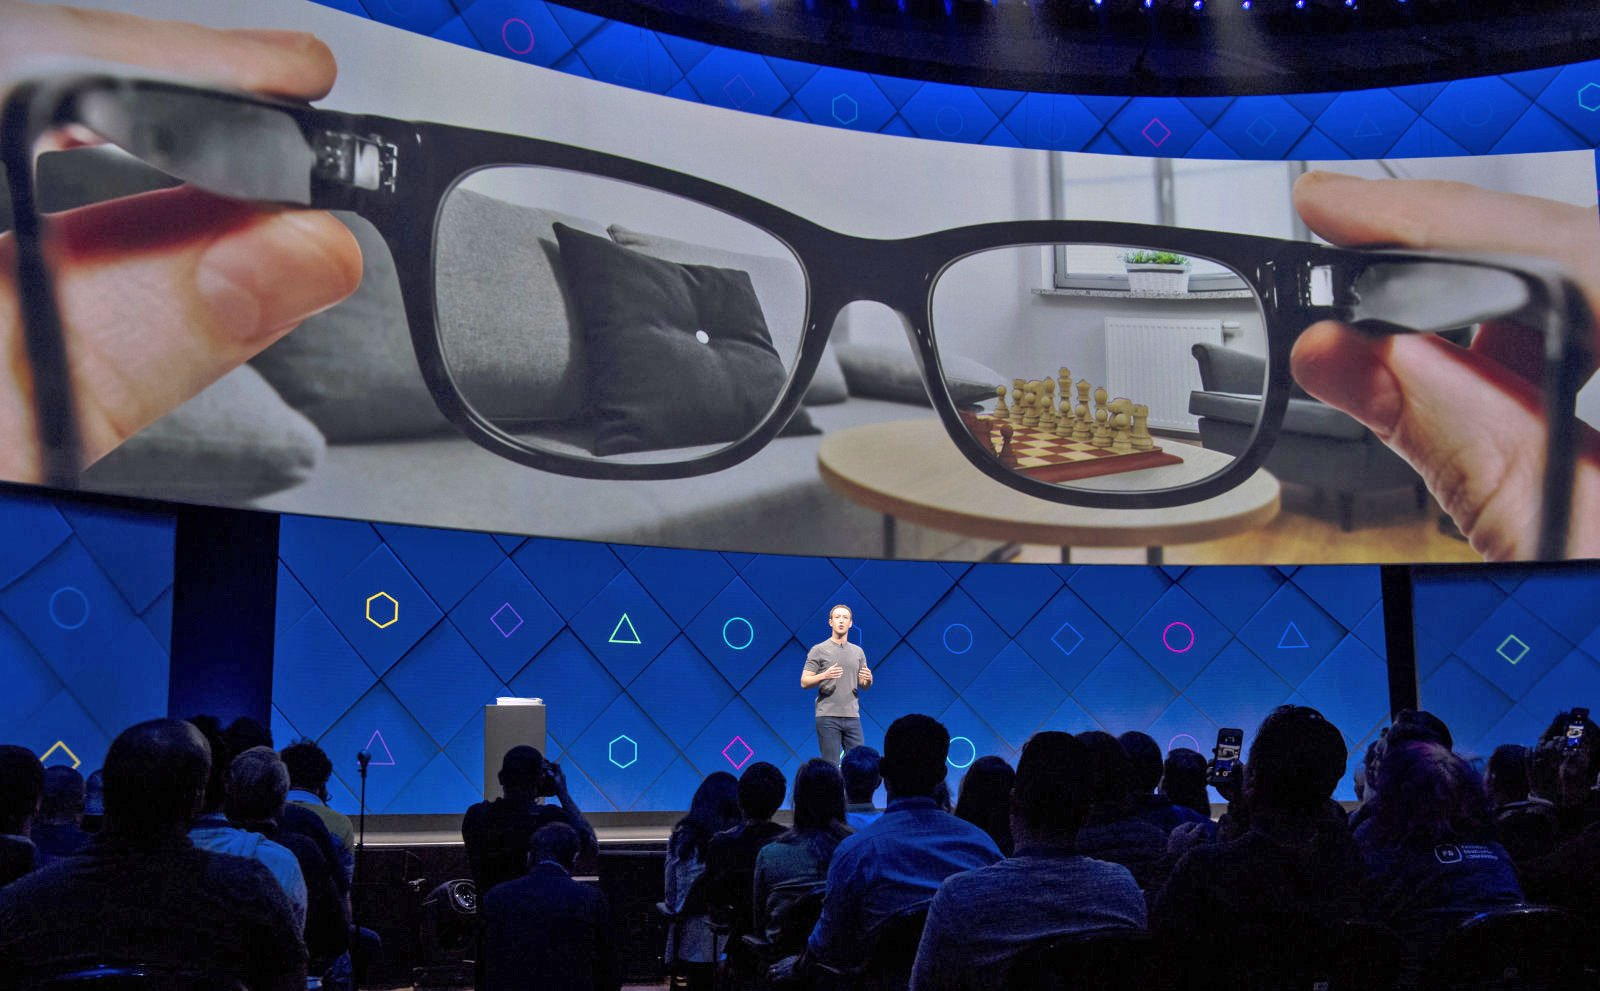 facebook, facebook news, facebook ar, facebook ar glasses, ar glasses, ar technology